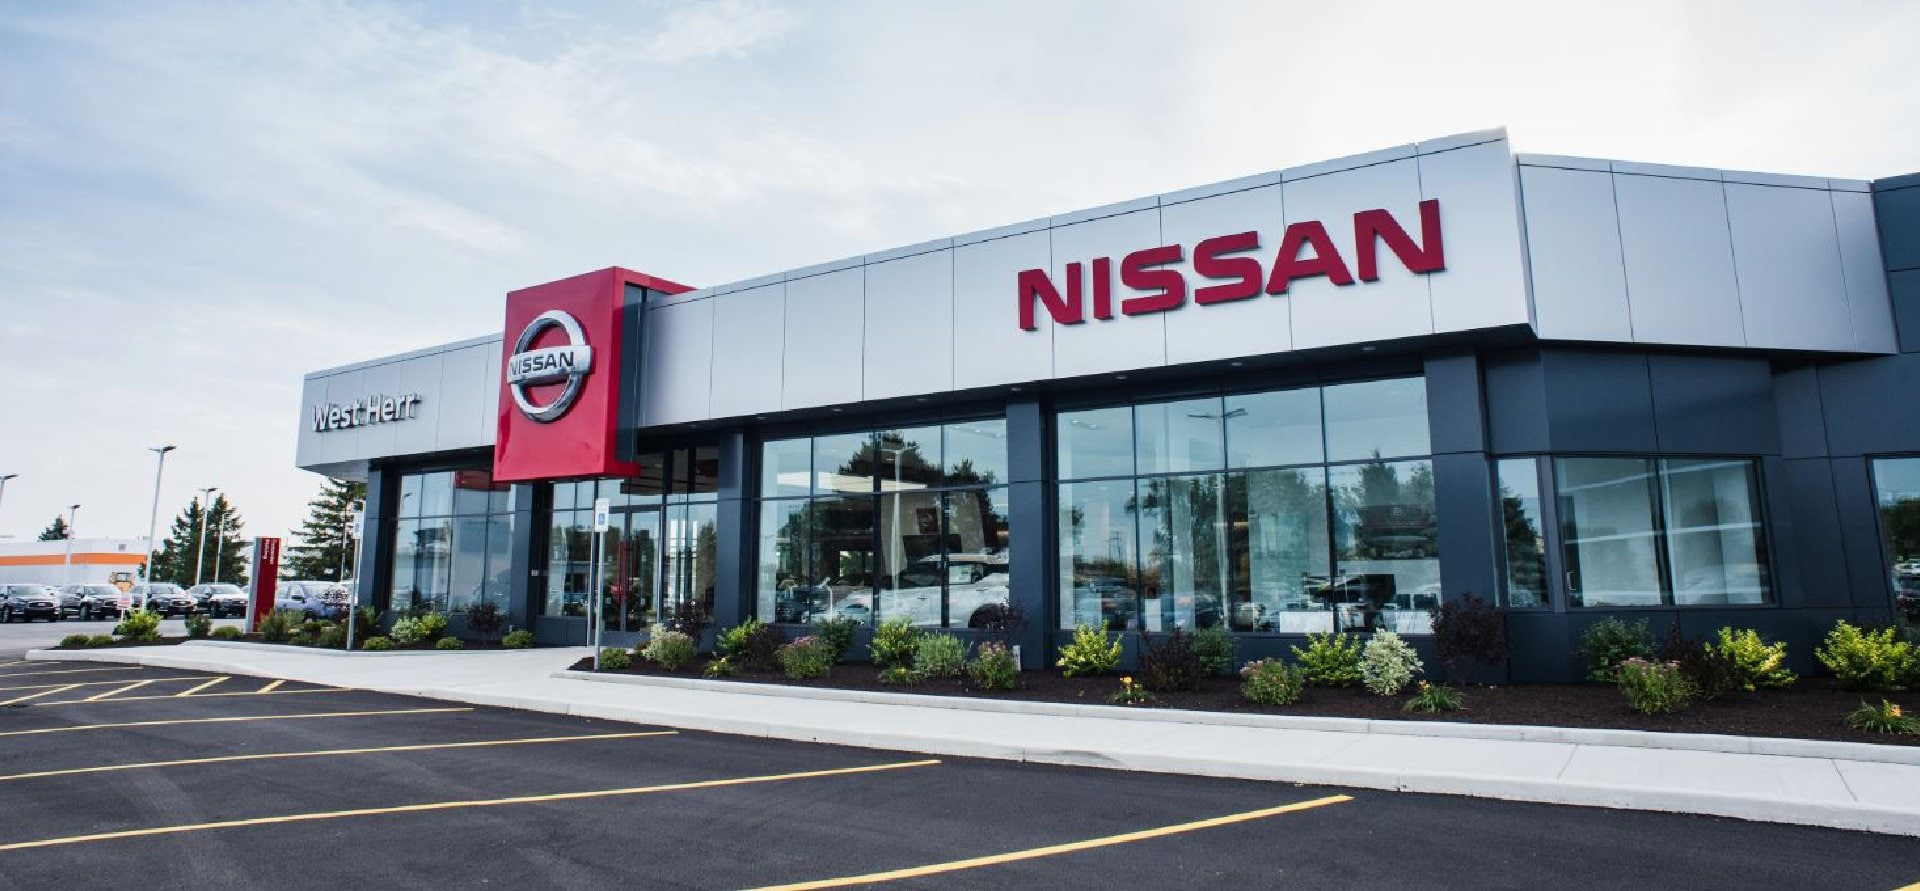 West Herr Nissan of Williamsville, dealership exterior